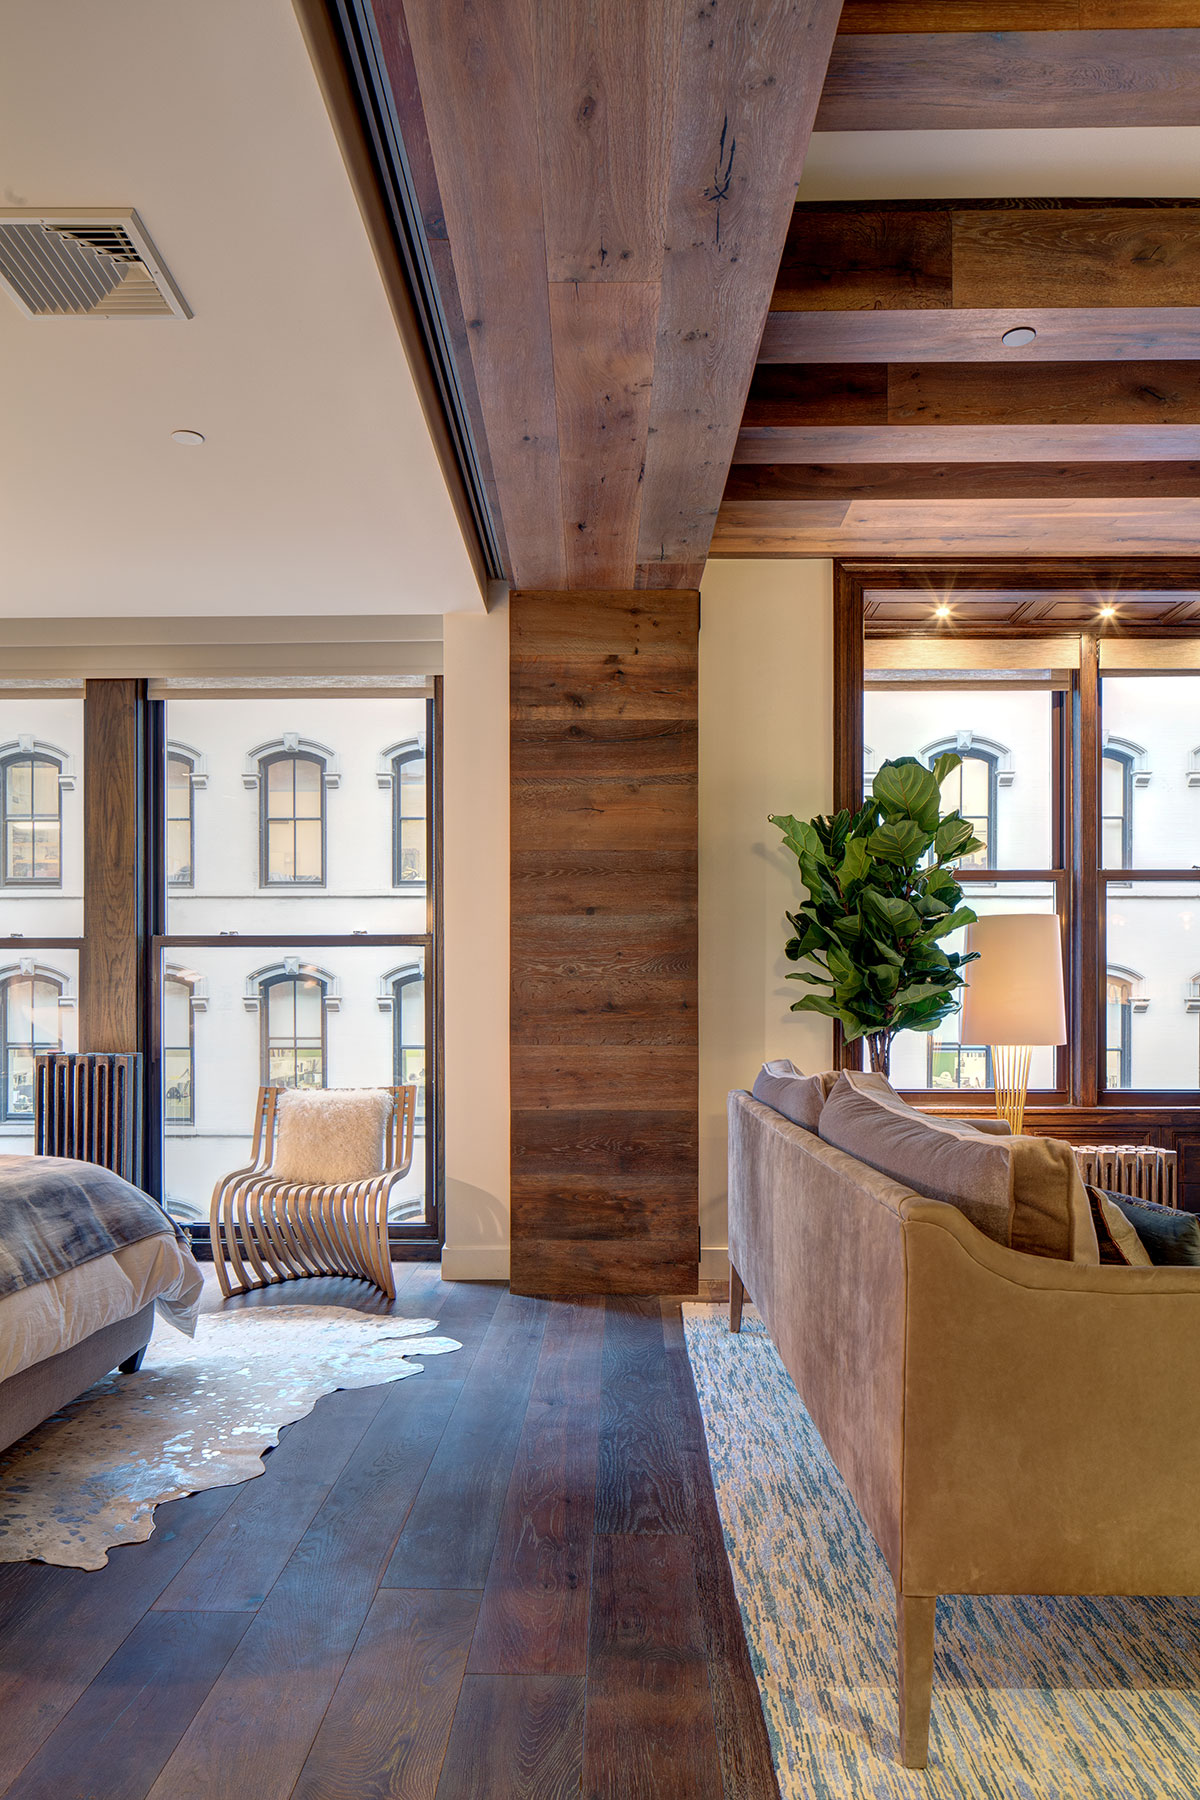 Russian oak wooden beam and cross beams dividing the space between the living room and the guest bedroom of the loft renovation project in Union Square, New York City designed by the architecture studio Danny Forster & Architecture